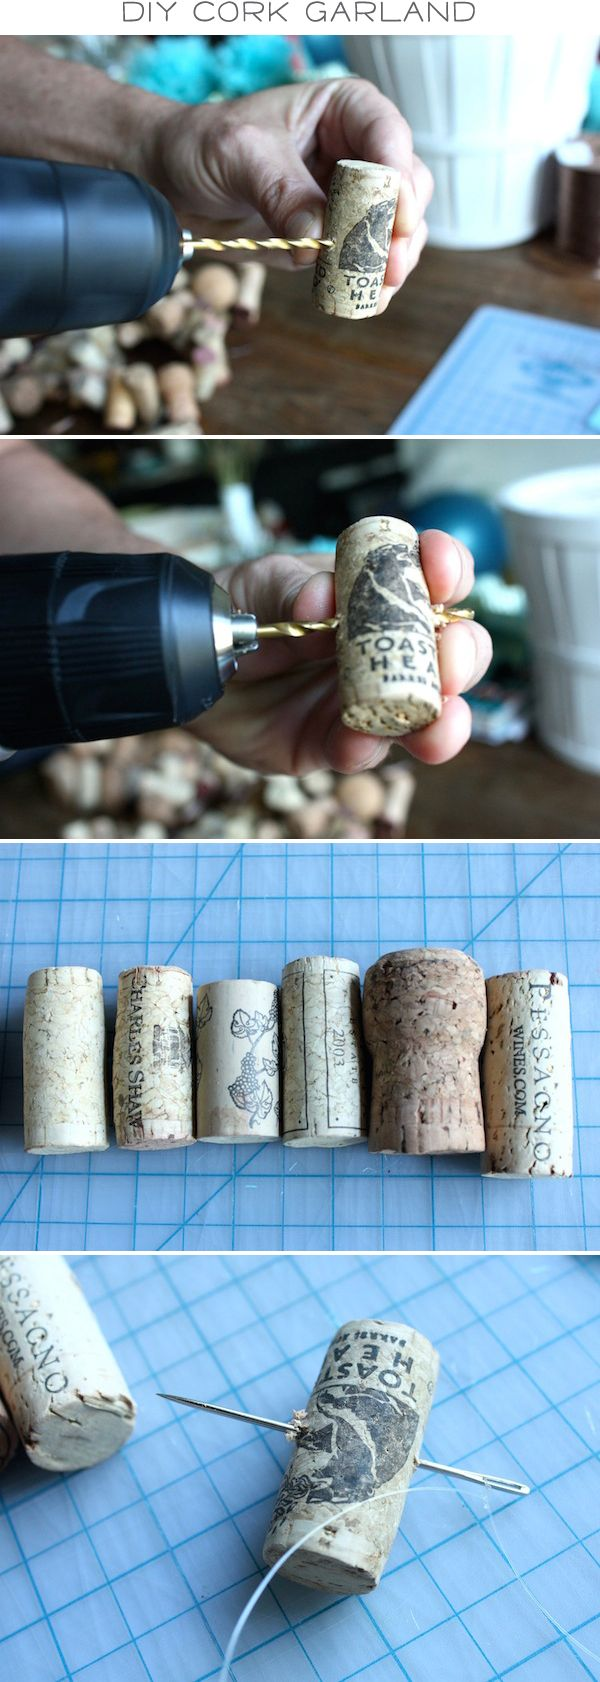 DIY cork garland ♥ wrap up with lighted garland for the, fireplace!